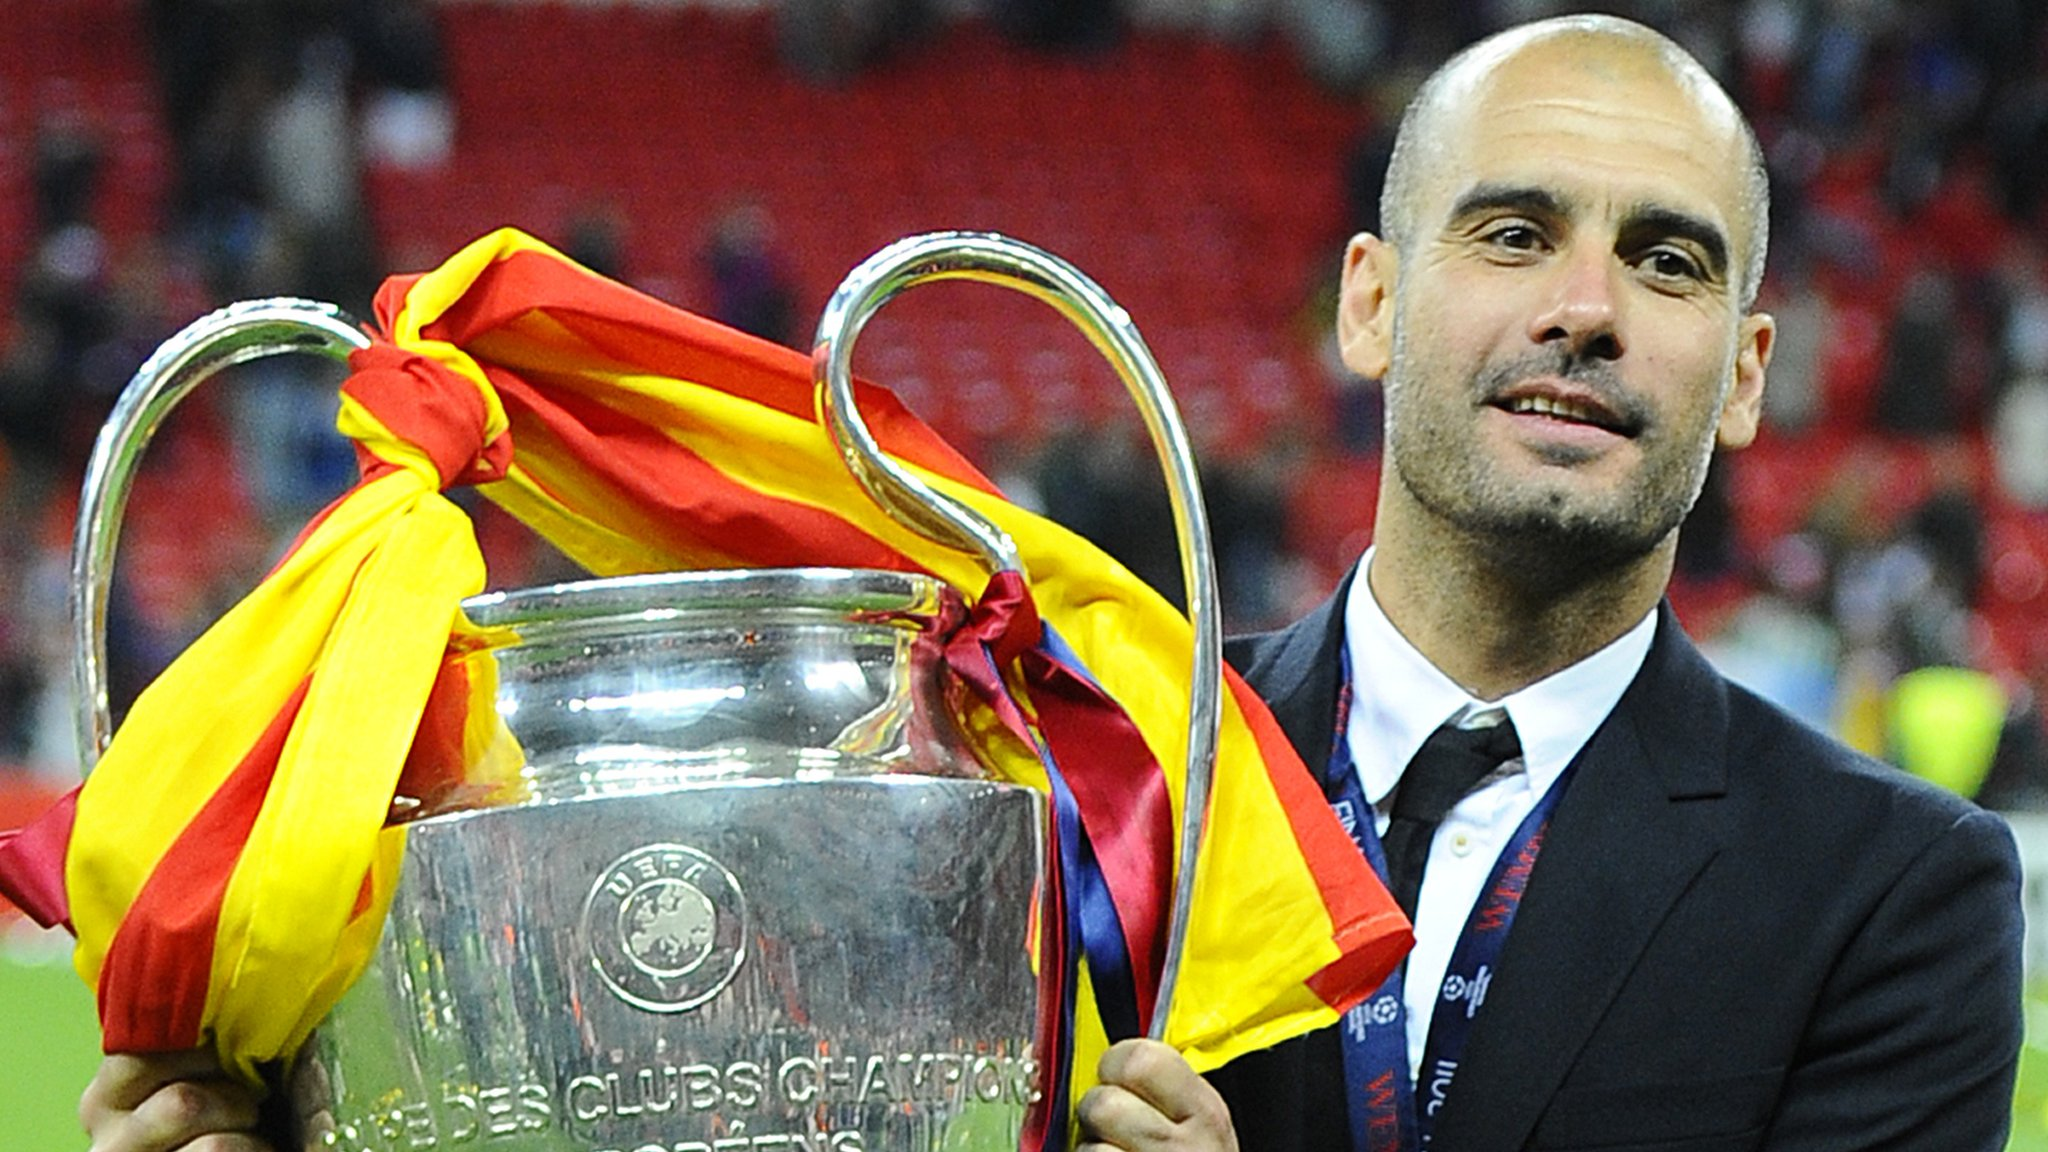 Schalke v Man City: Pep Guardiola says his side have 'many dreams' before facing Germans